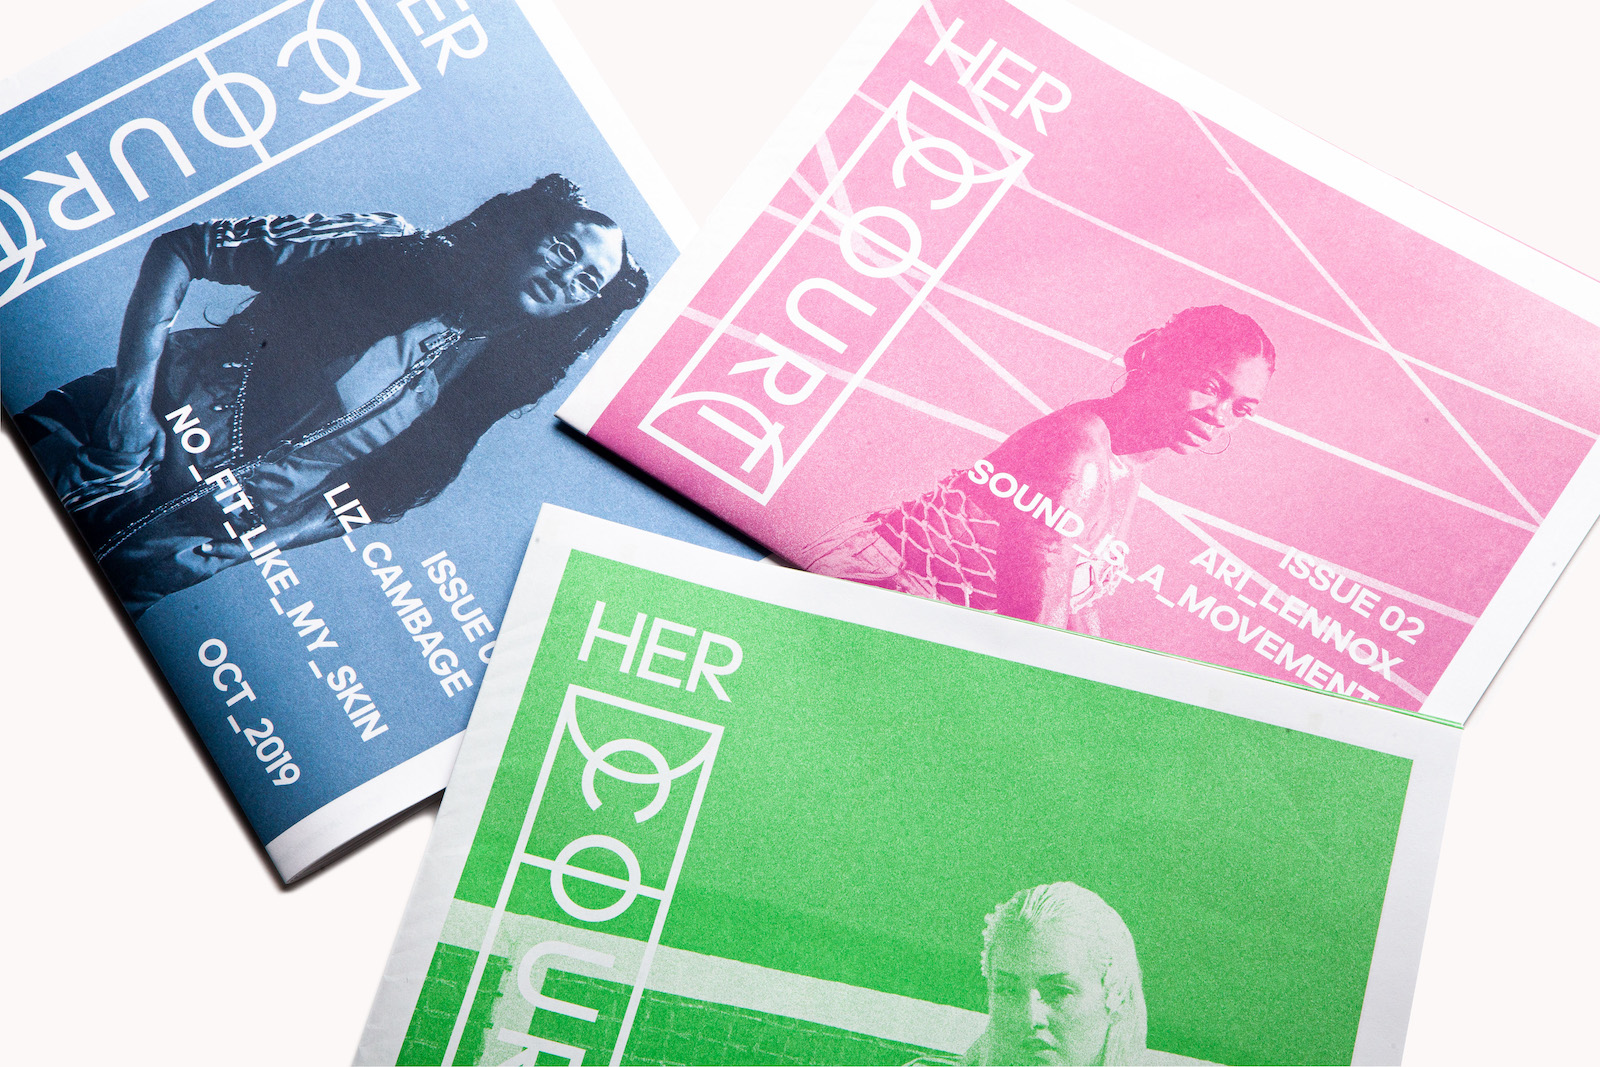 A stack of three newsprint zines, each printed in duotone: one blue, one pink and one green.